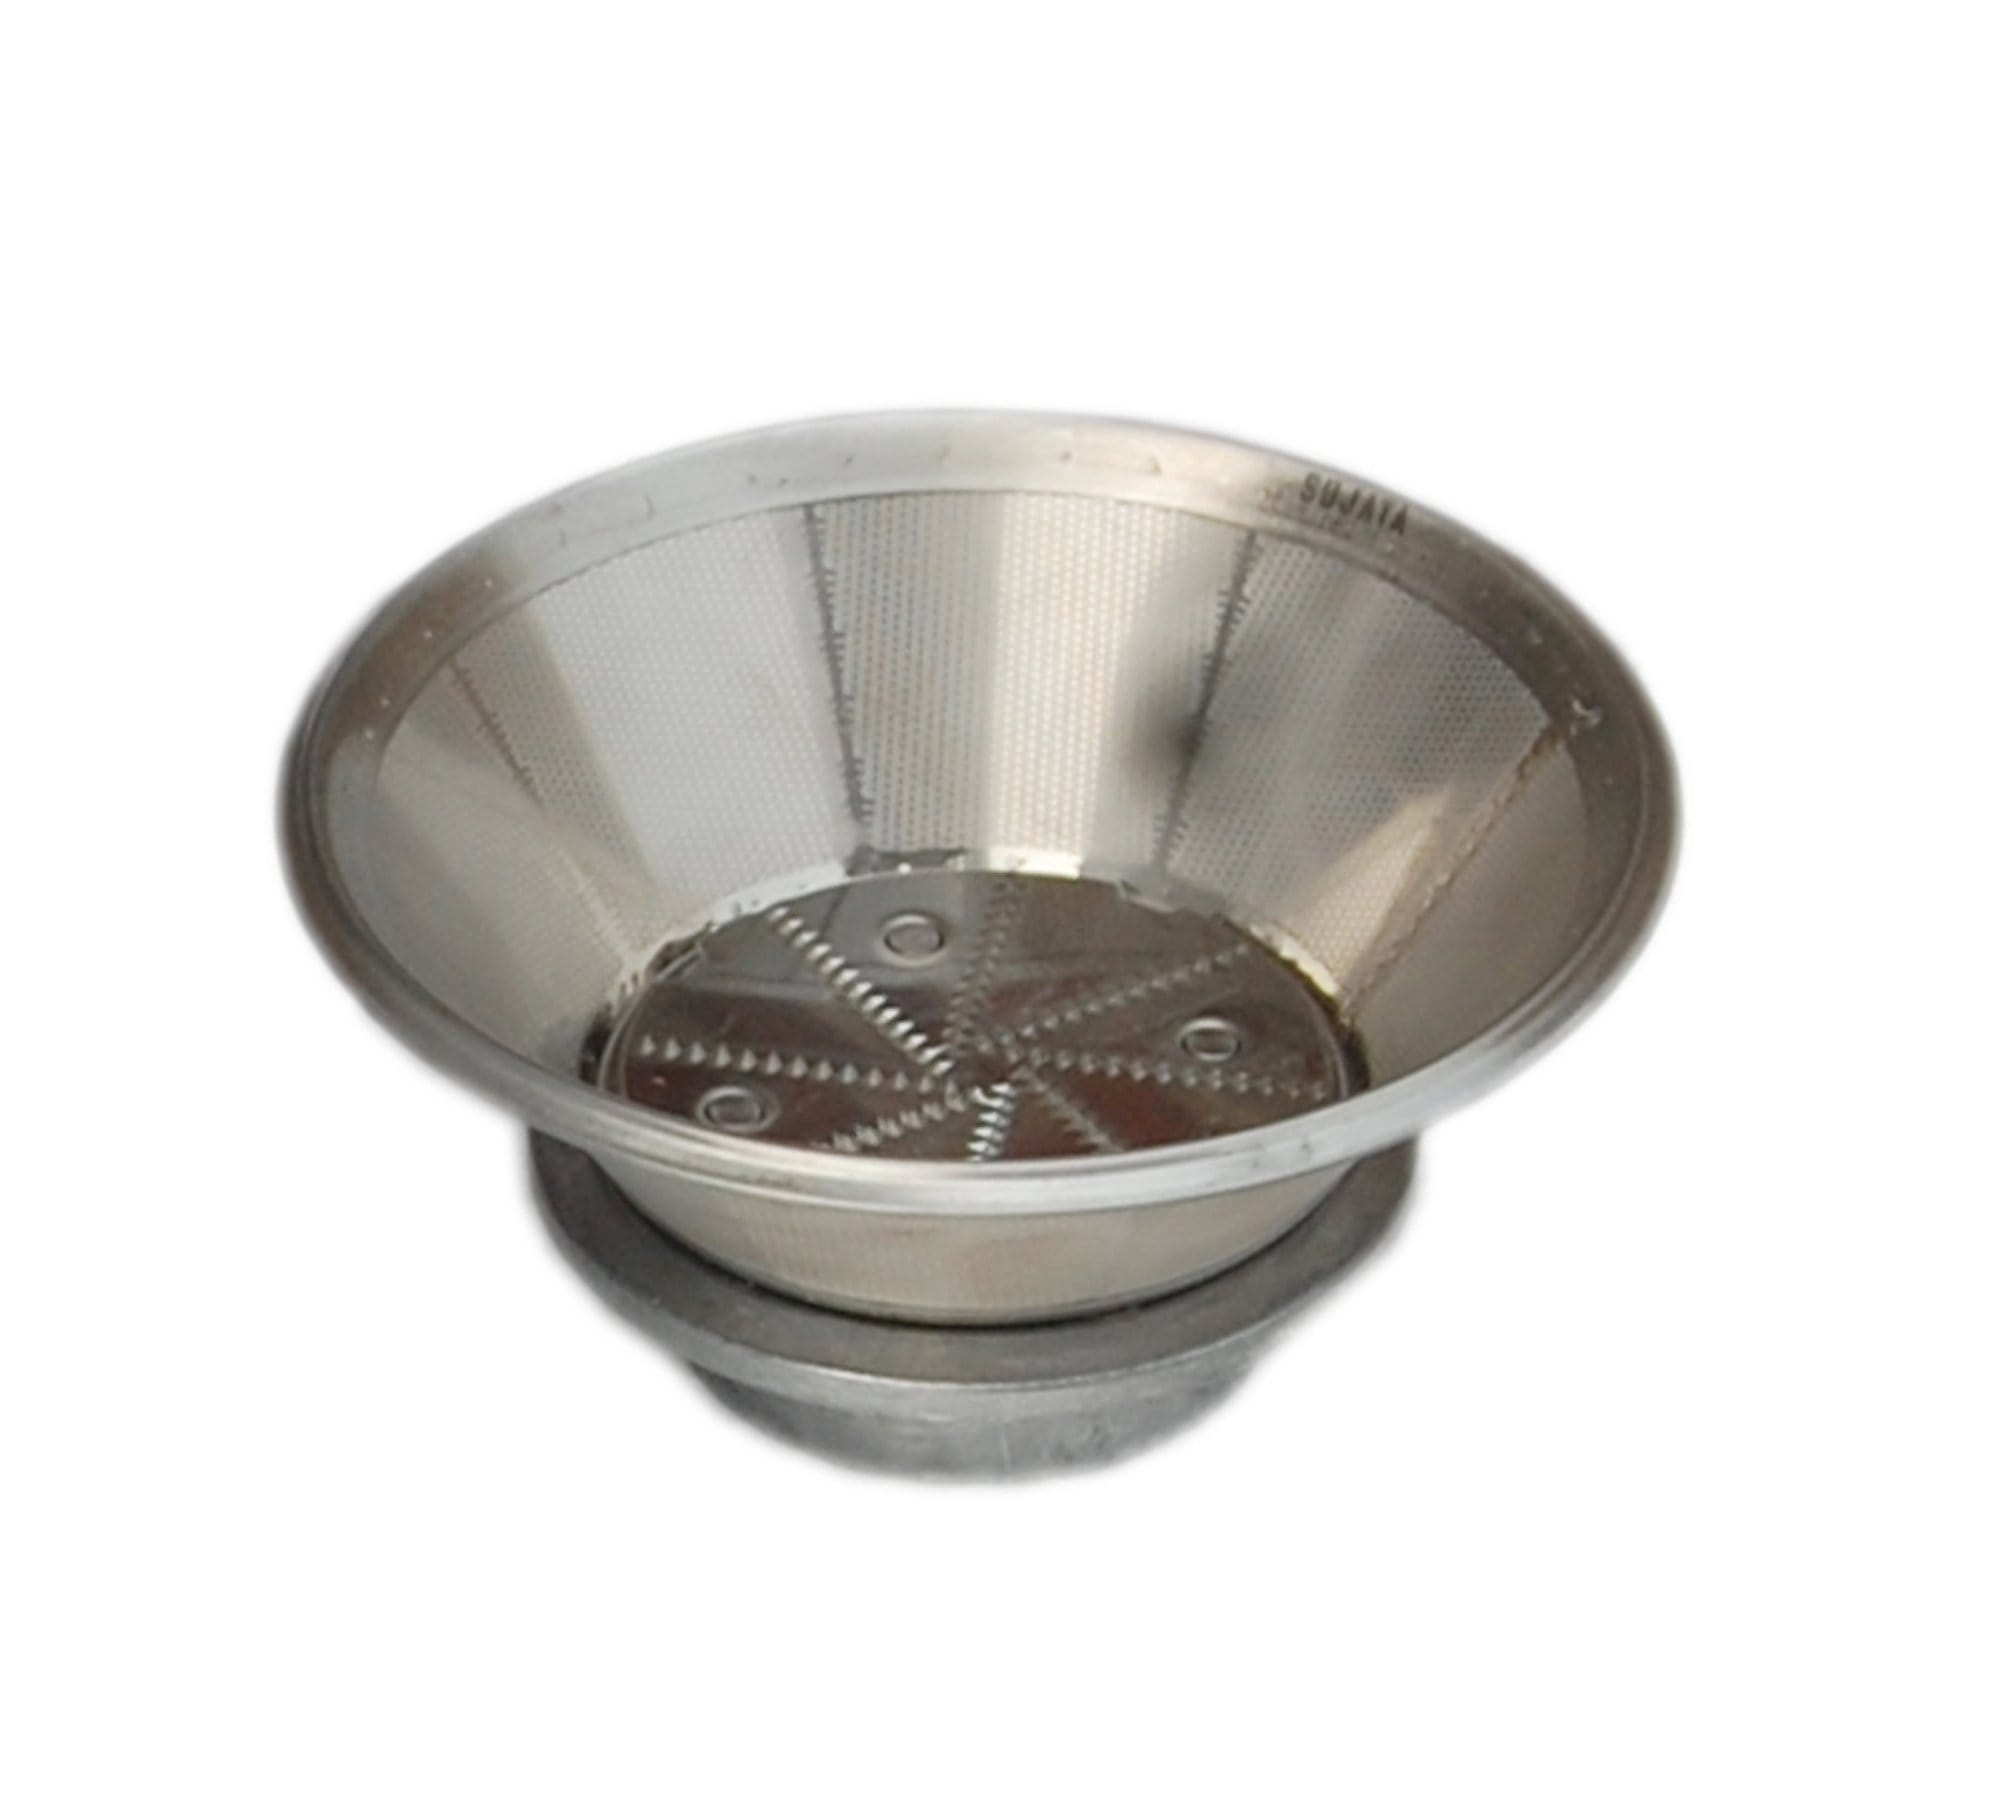 sujata Steel Juicer Jali for Sujata Juicer 8945098913462